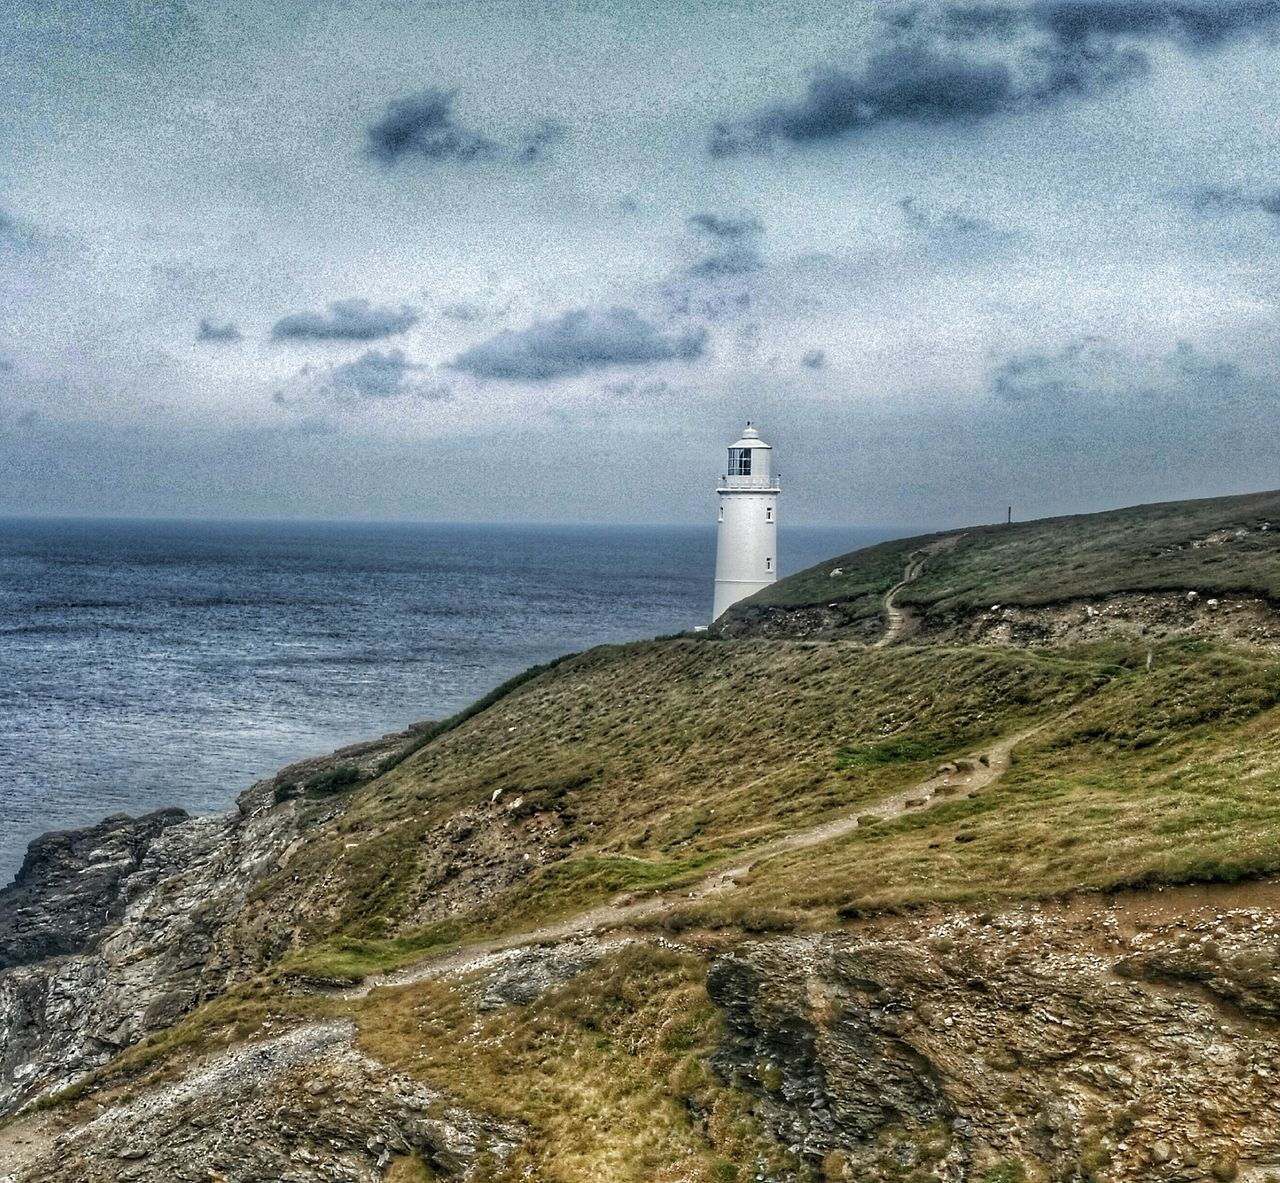 lighthouse, direction, guidance, safety, sea, sky, built structure, building exterior, architecture, nature, water, horizon over water, day, protection, scenics, cloud - sky, tranquil scene, beauty in nature, tranquility, grass, outdoors, beach, no people